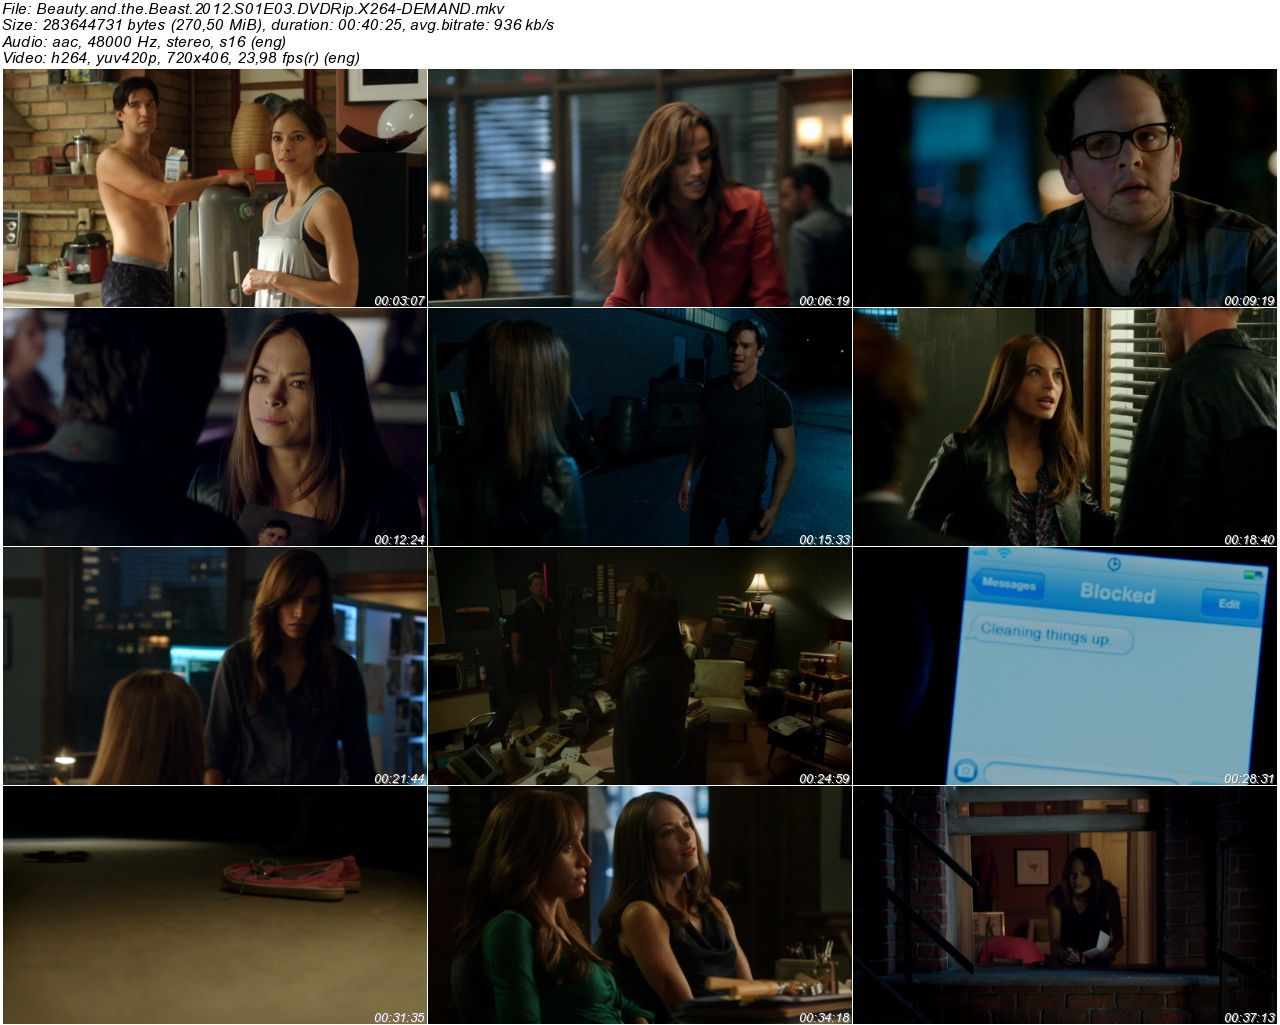 Beauty and the Beast 2012 1. Sezon T�m B�l�mler DVDRip x264 T�rk�e Altyaz�l� Tek Link indir